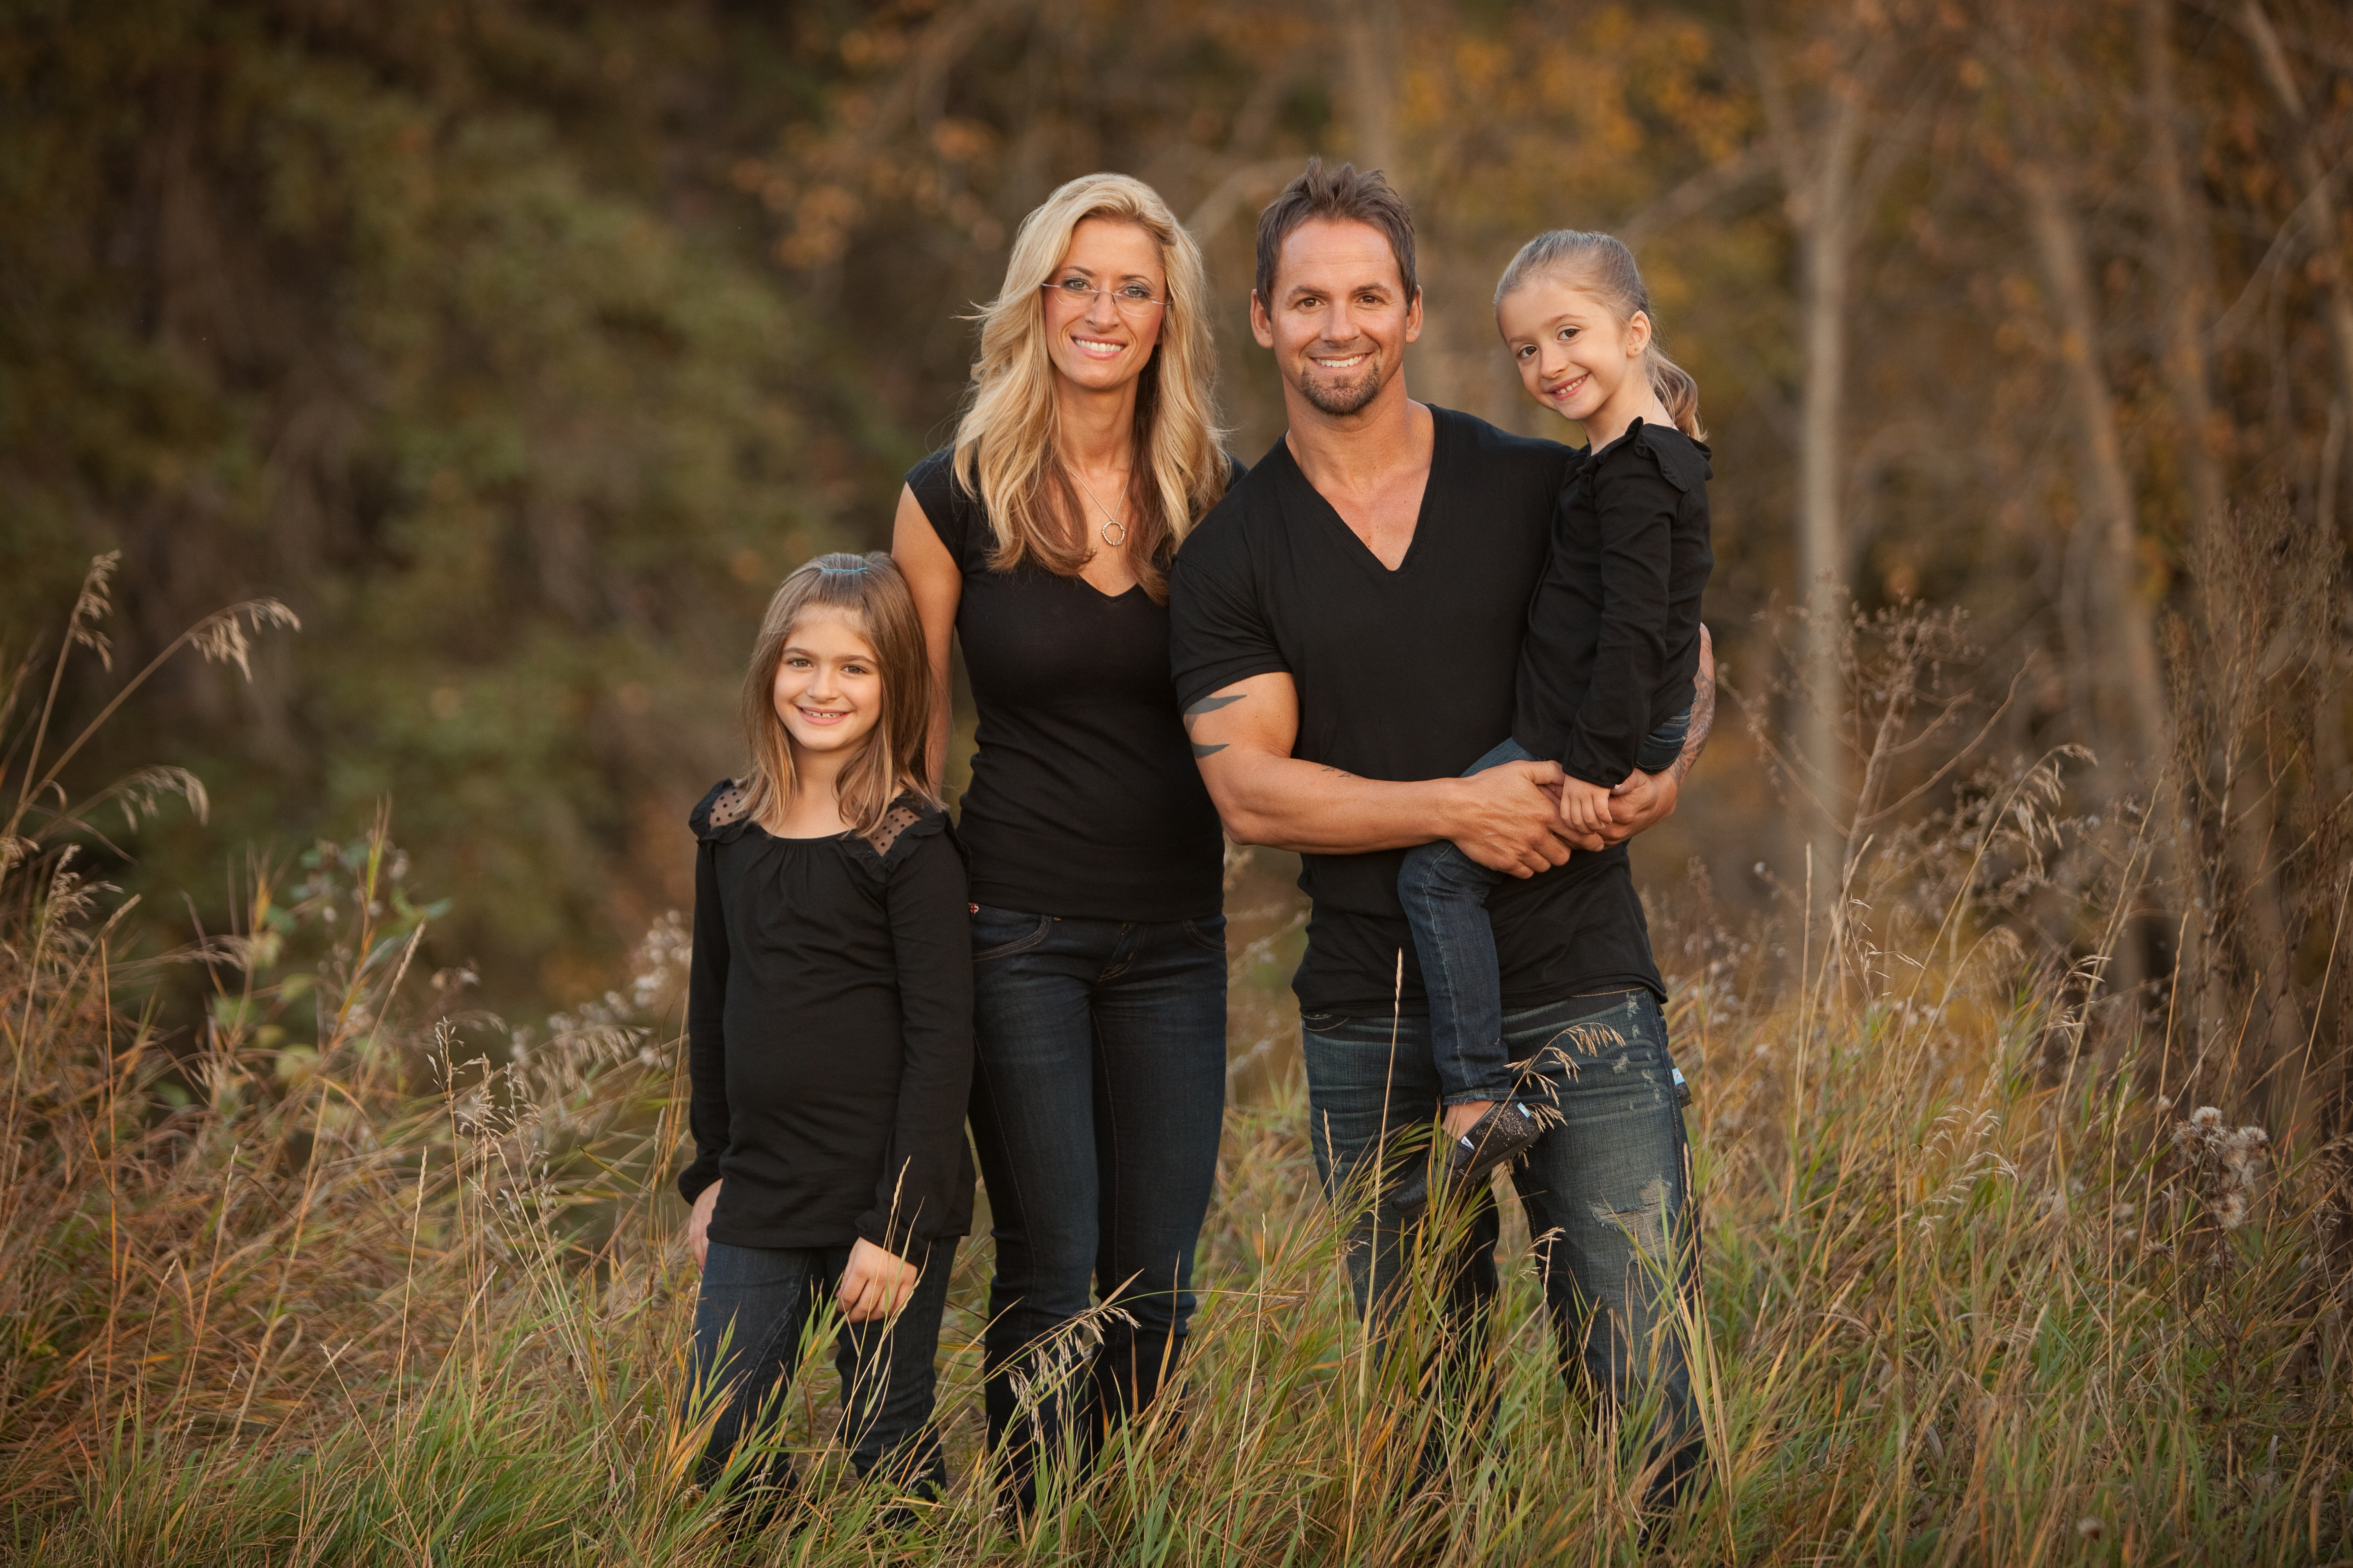 Family of four dressed in black standing together